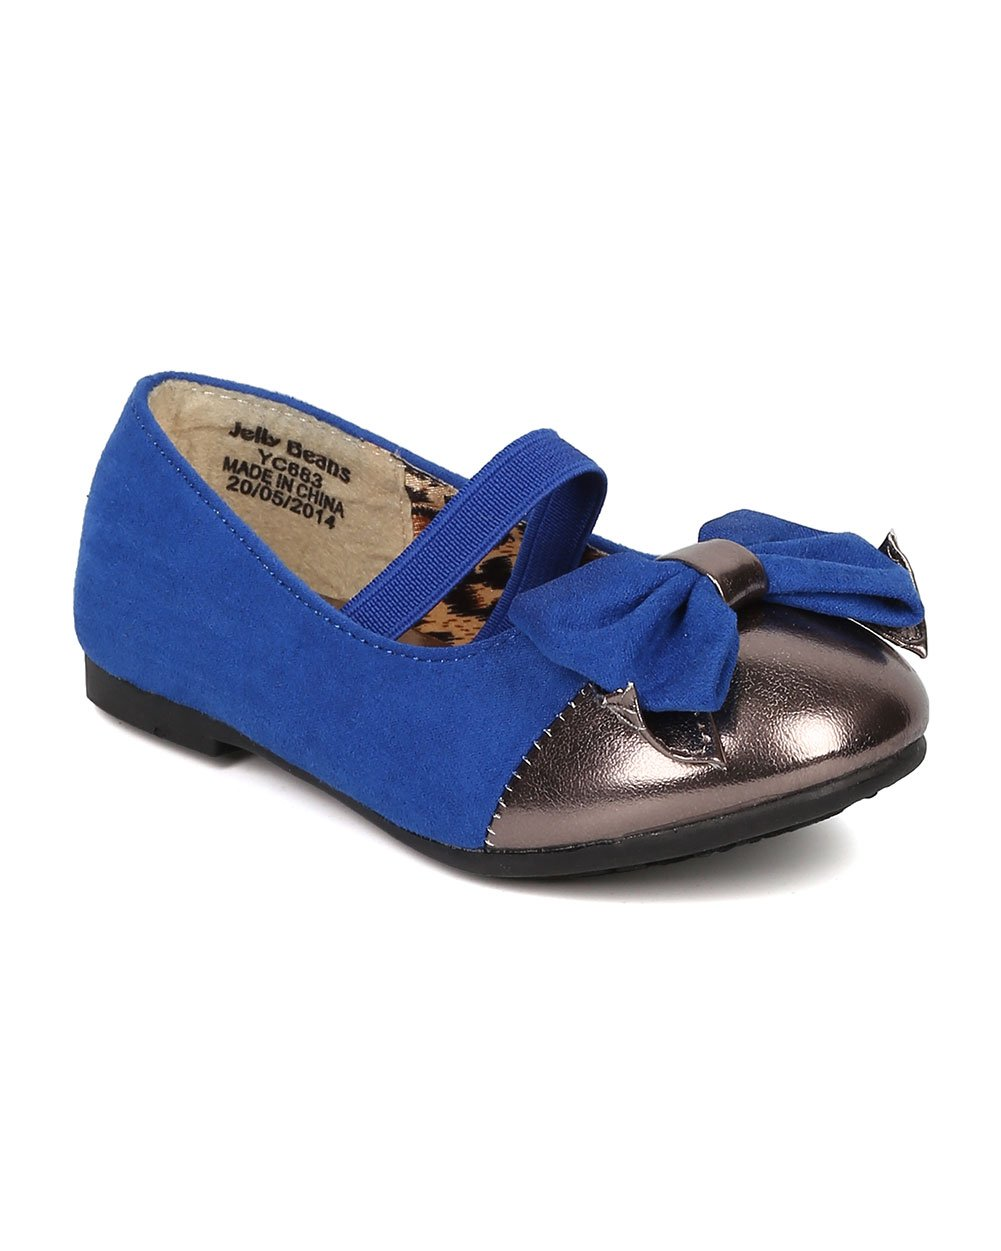 JELLY BEANS Saroya Gold Cap Round Toe Ballet Flat Bow Elastic Mary Jane (Toddler) AC85 - Royal Blue Faux Suede (Size: Toddler 6)